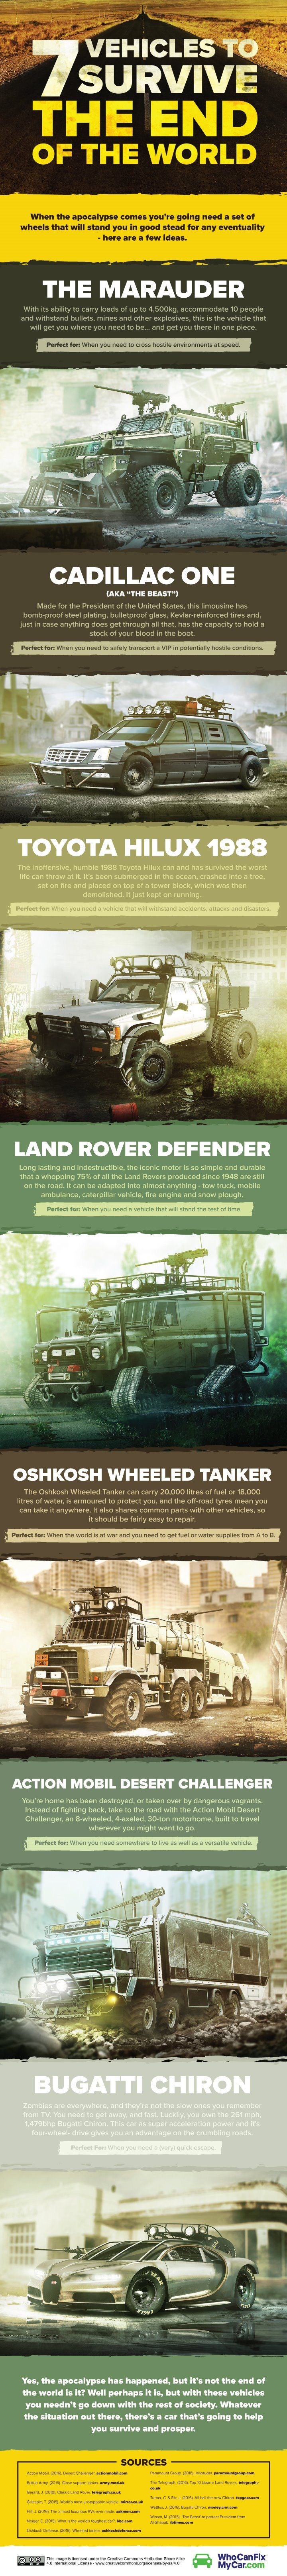 Have you thought about the kind of vehicle you might need in a survivalist scenario? There are several options, such as the seven in this infographic.